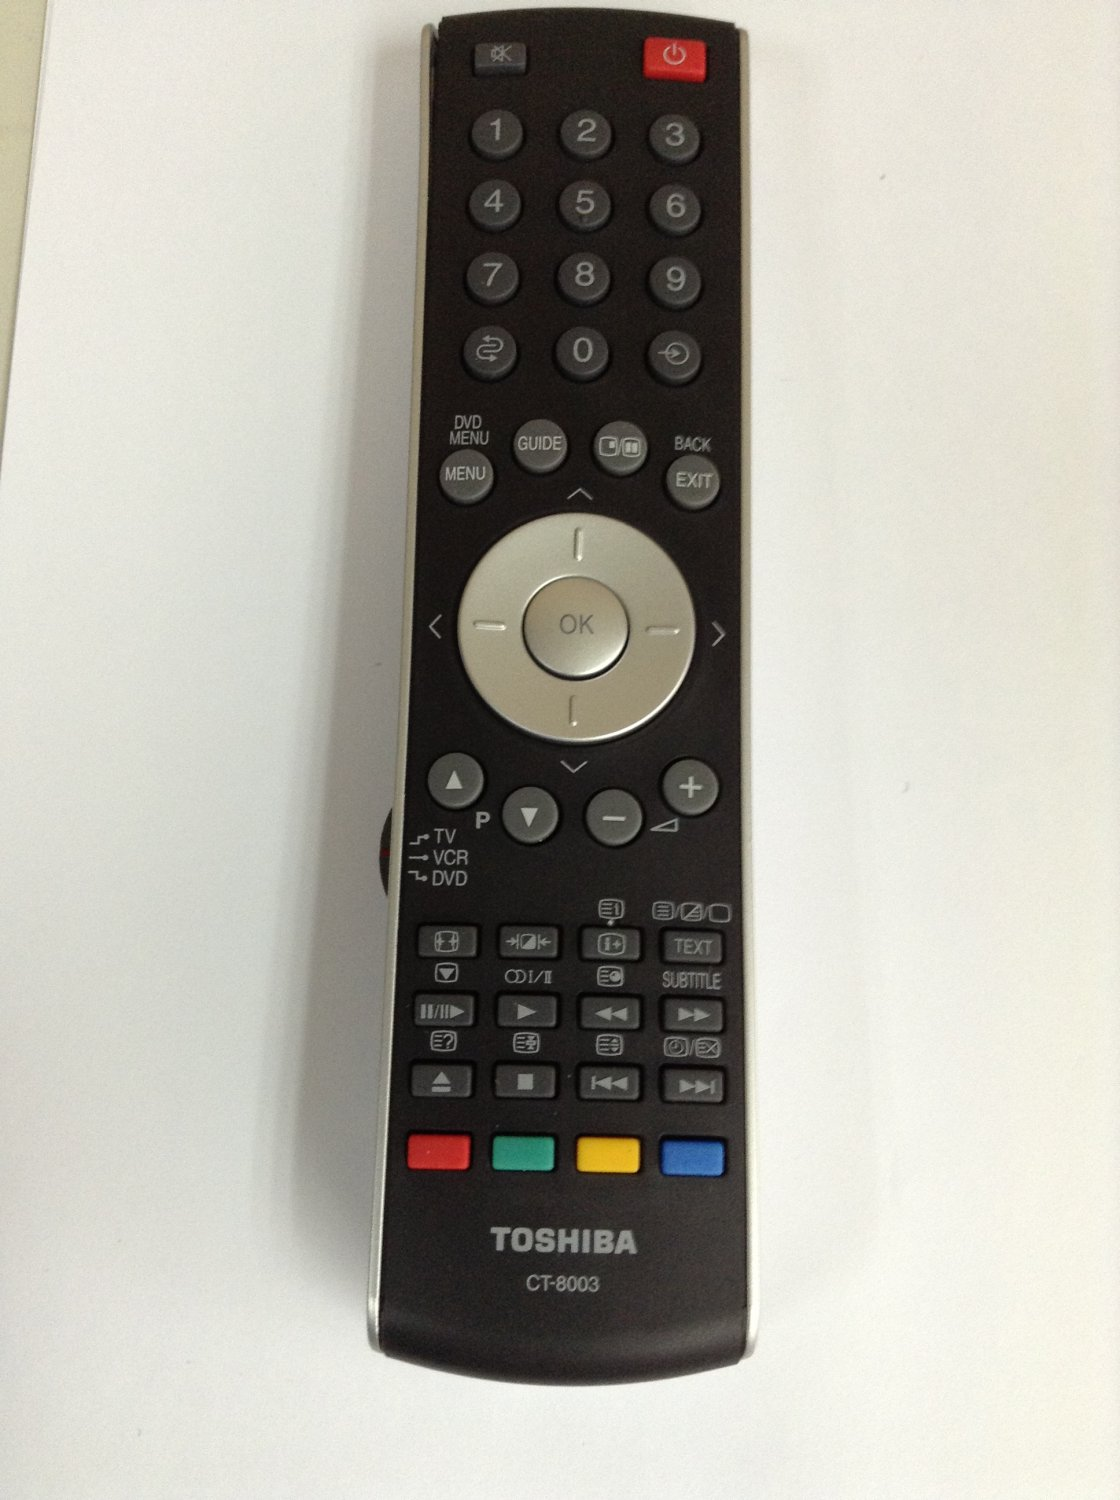 REMOTE CONTROL FOR TOSHIBA TV CT-885 20HL85 20HL86 23HL85 P47LSA 32AV500E